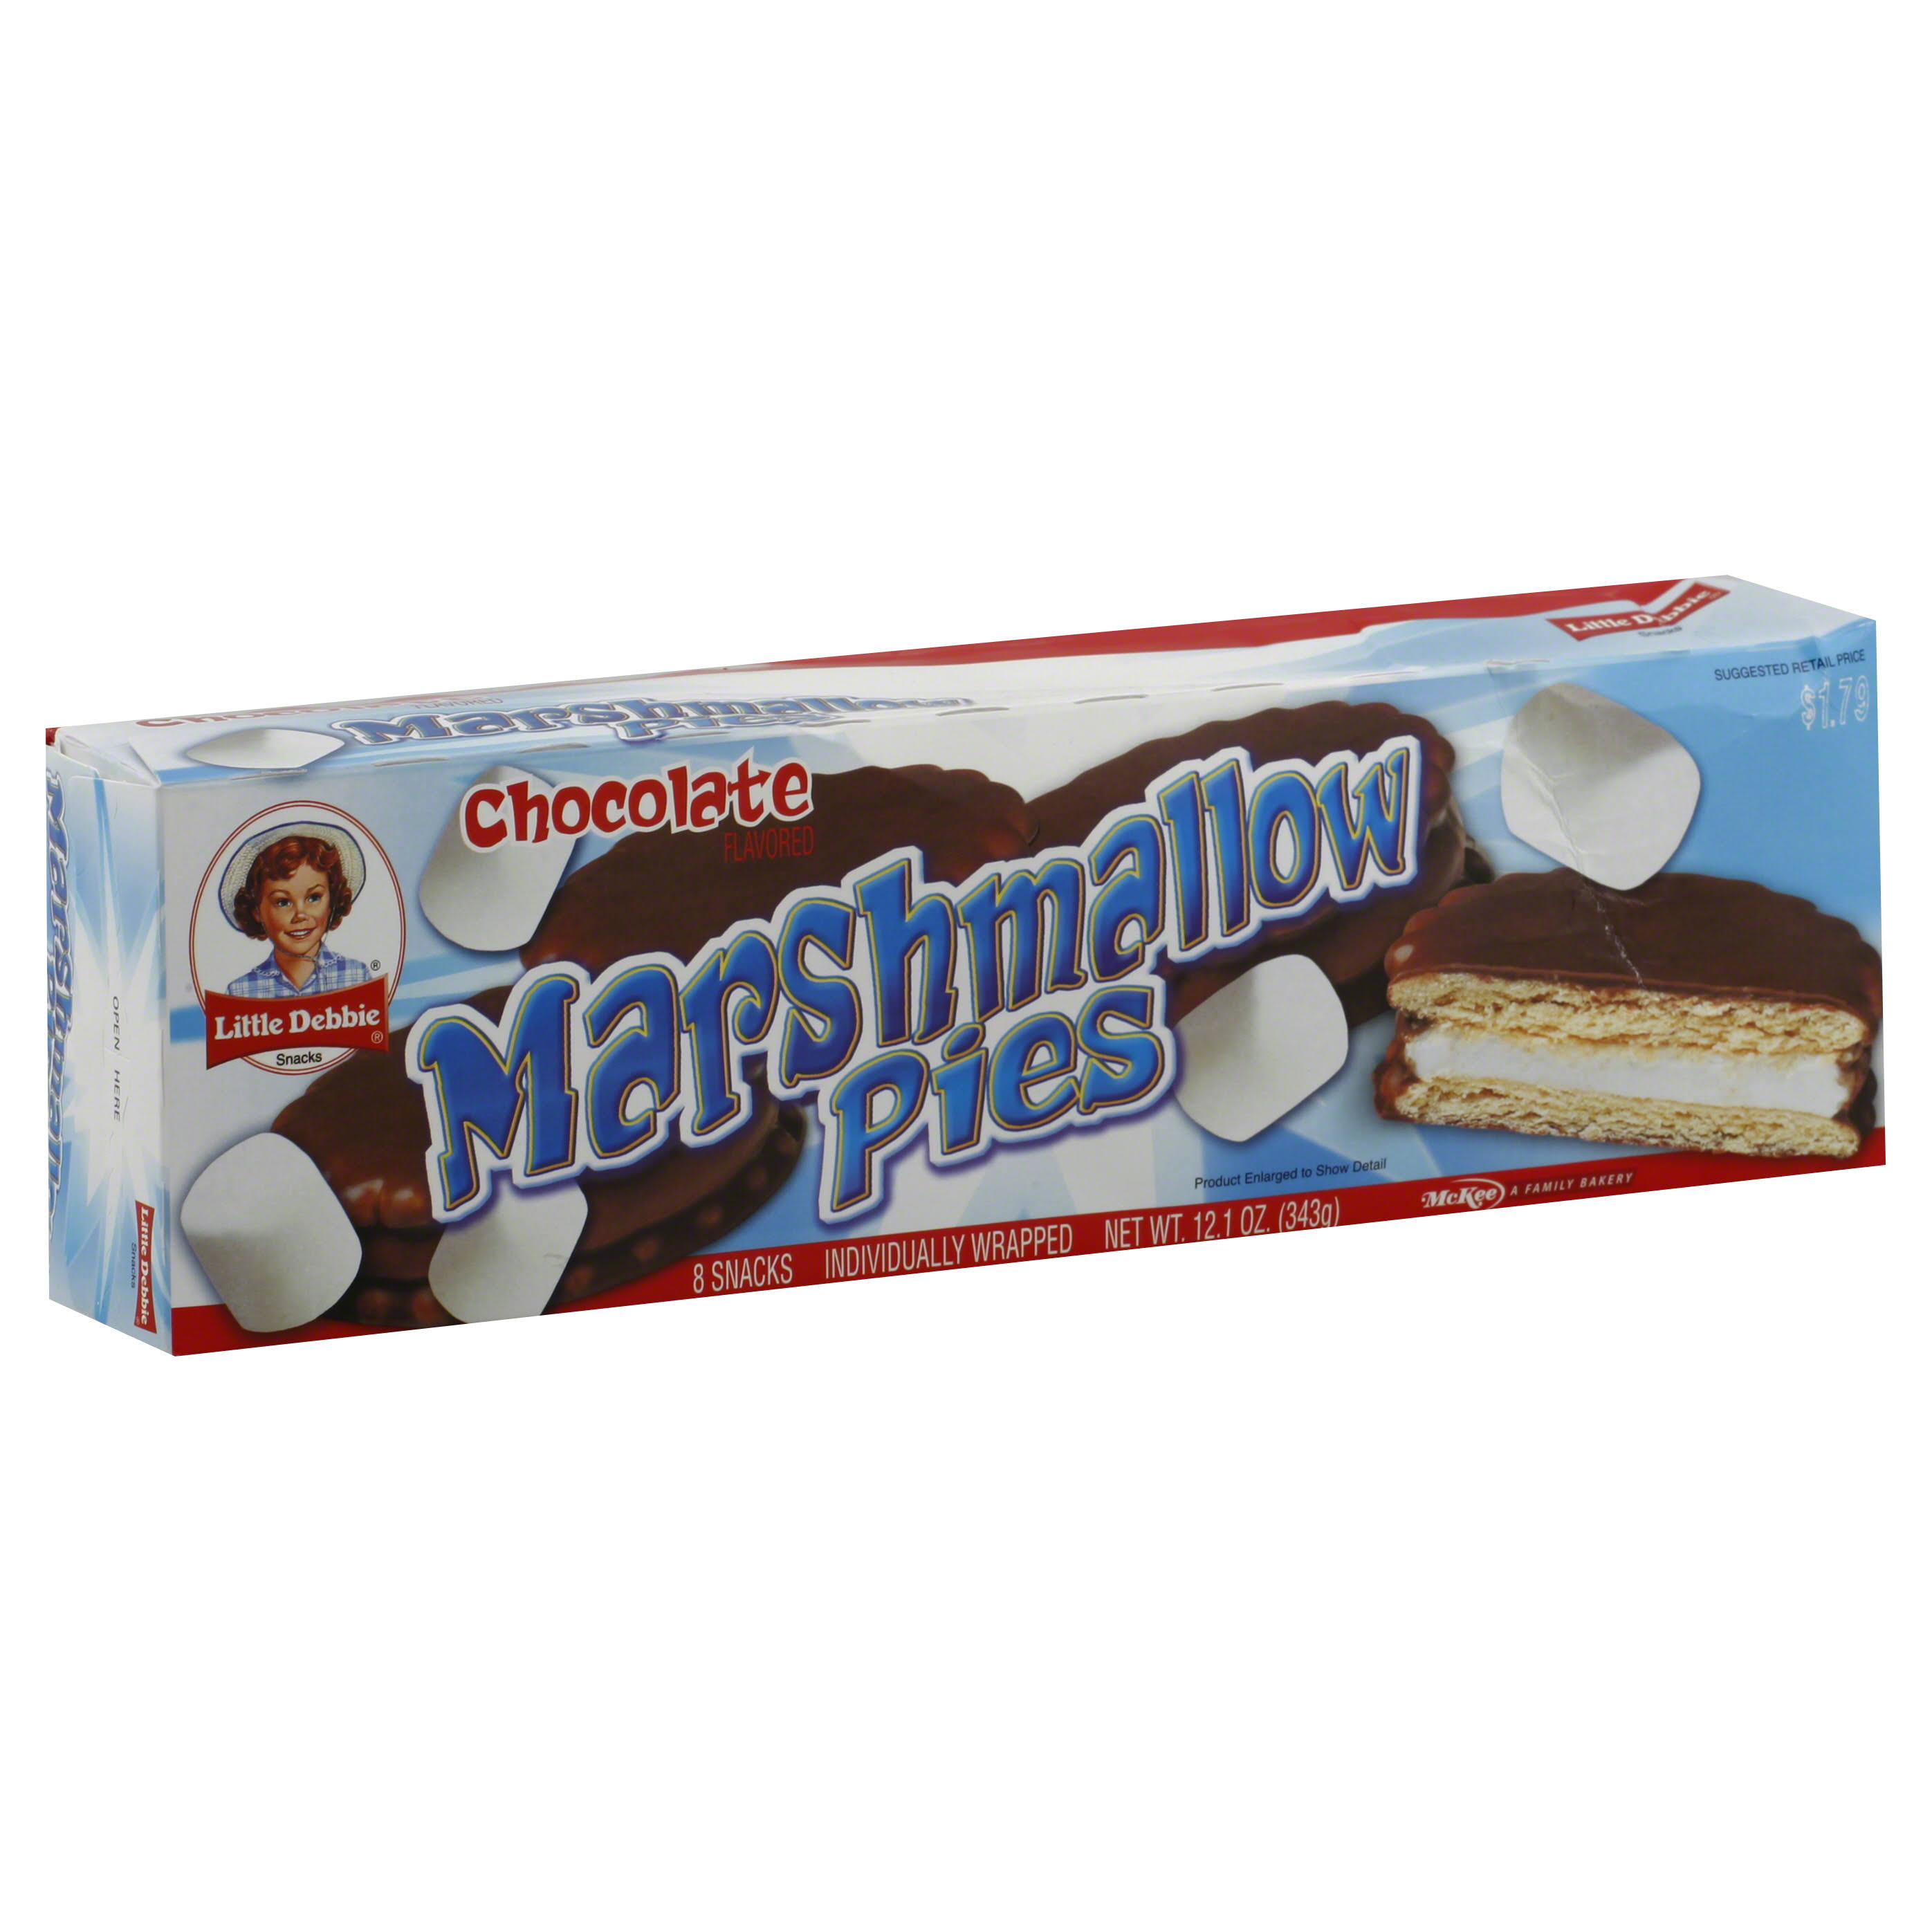 Little Debbie Snacks Marshmallow Pies - Chocolate Flavored, 8ct